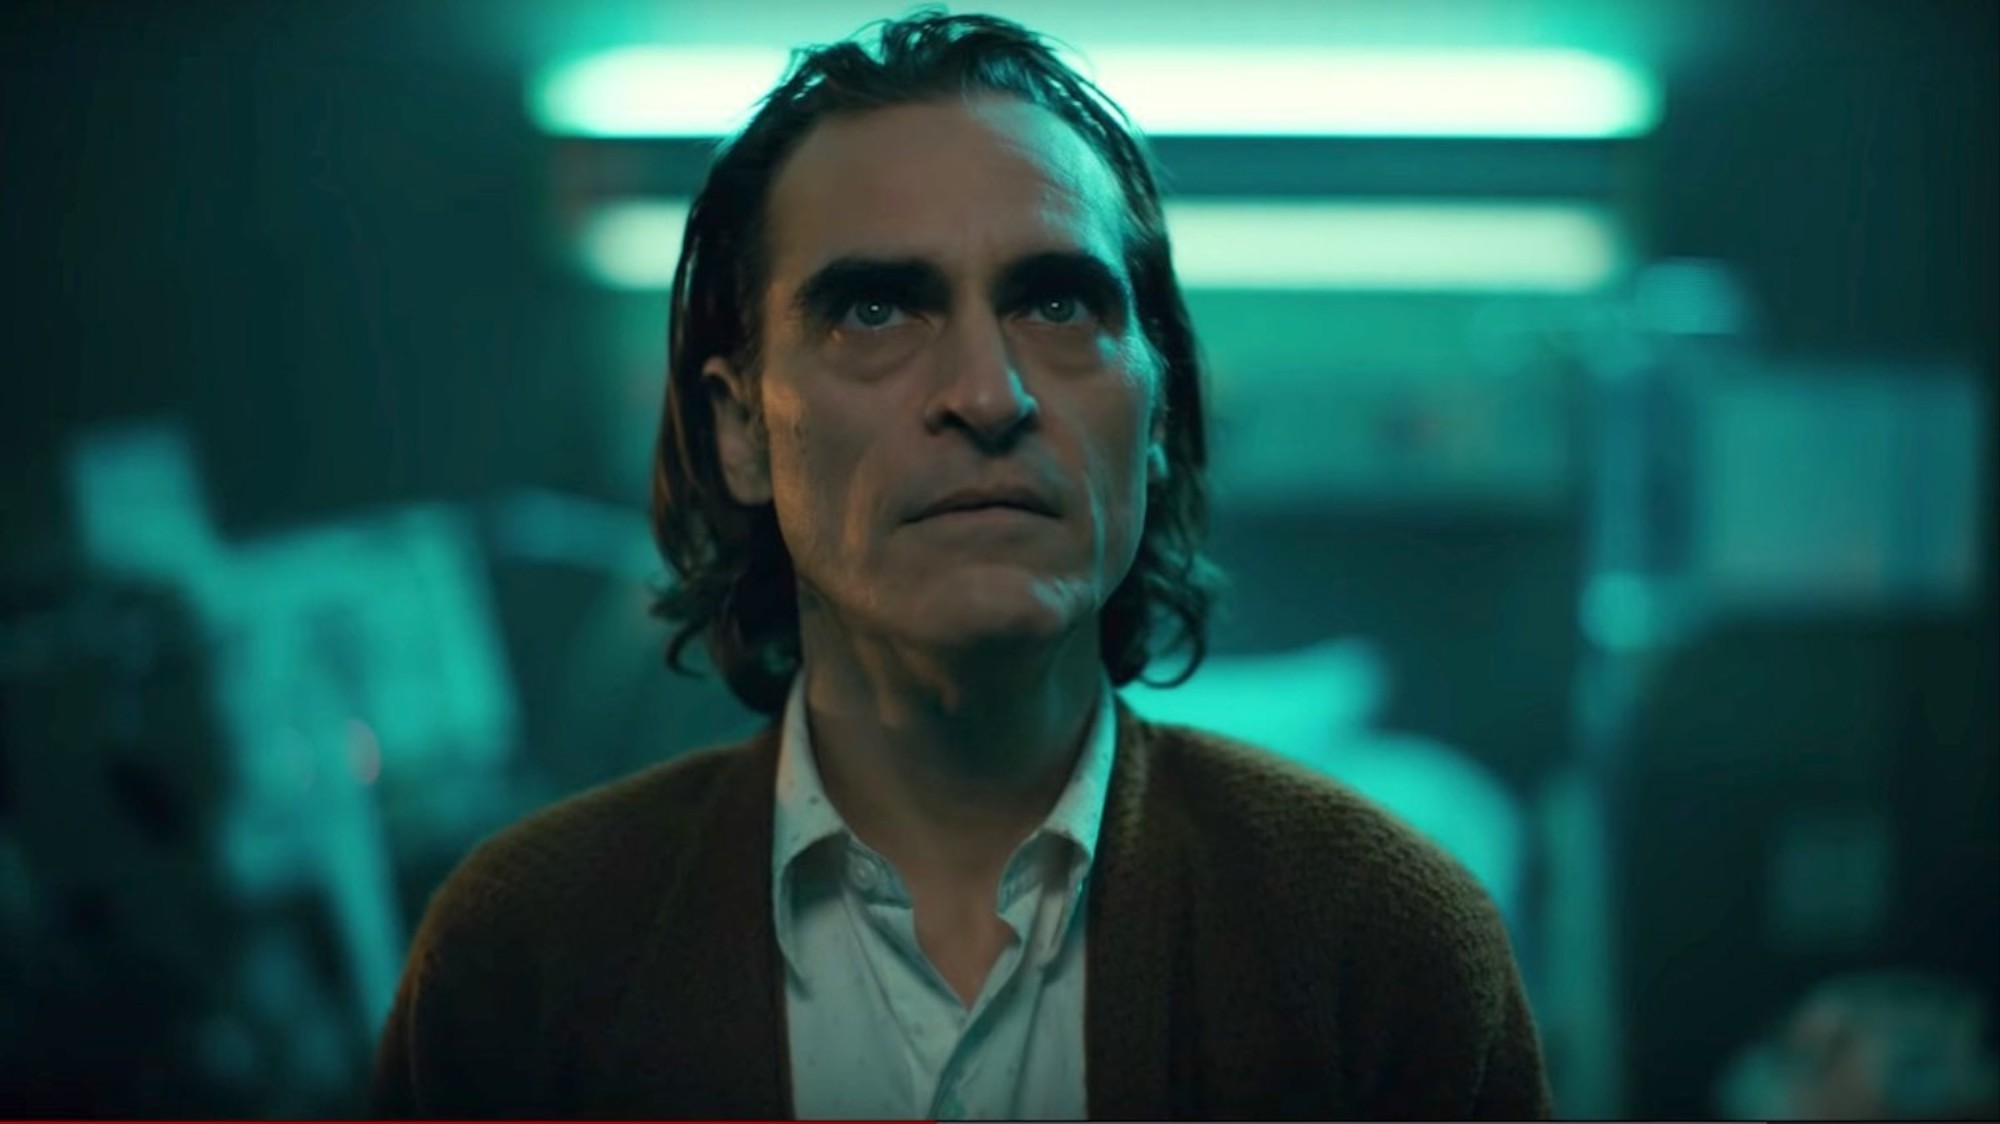 Billedresultat for joaquin phoenix joker